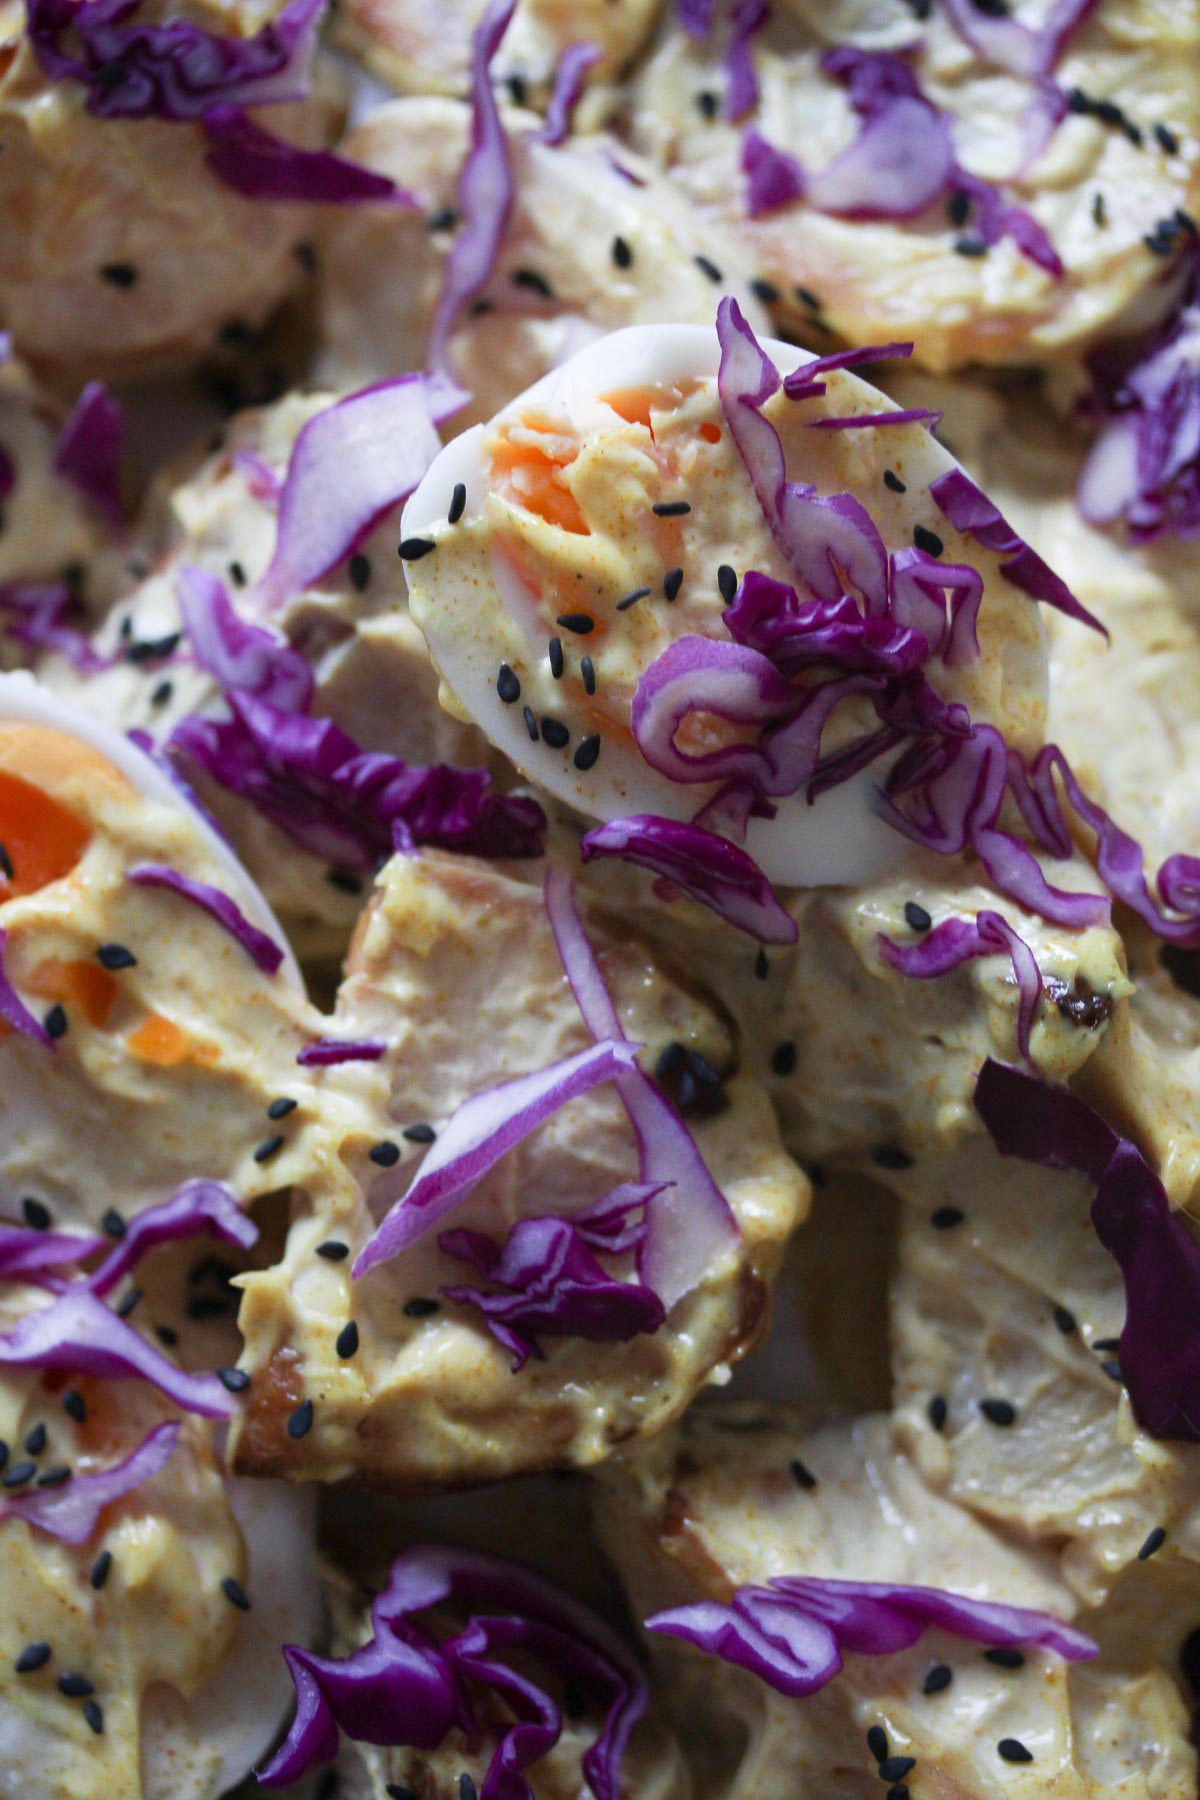 Close up of Japanese Curried Potato and Egg Salad, garnished with red cabbage, black sesame seeds